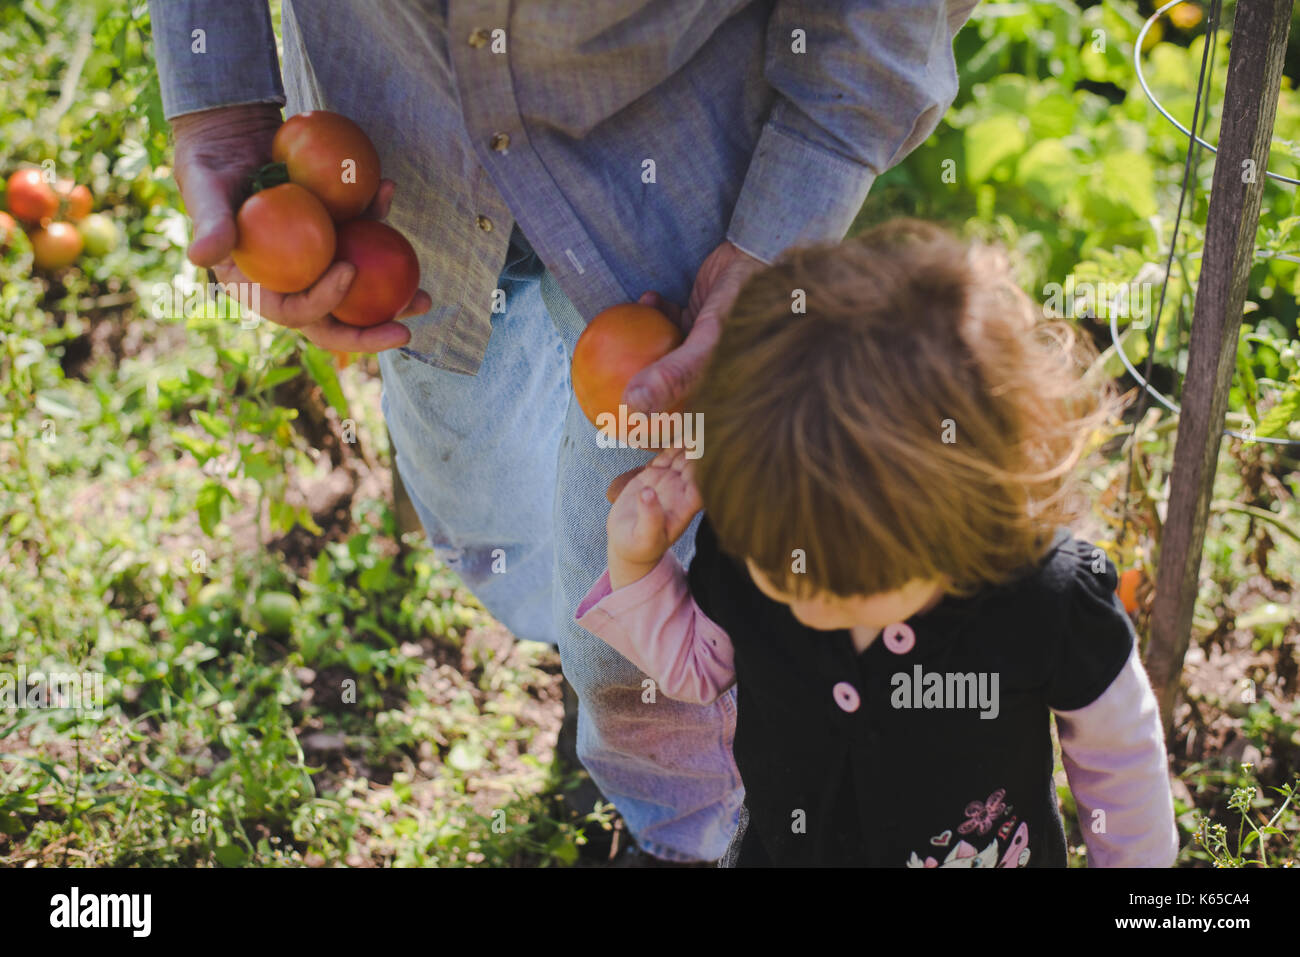 A child and man gather tomatoes from a garden outside. - Stock Image